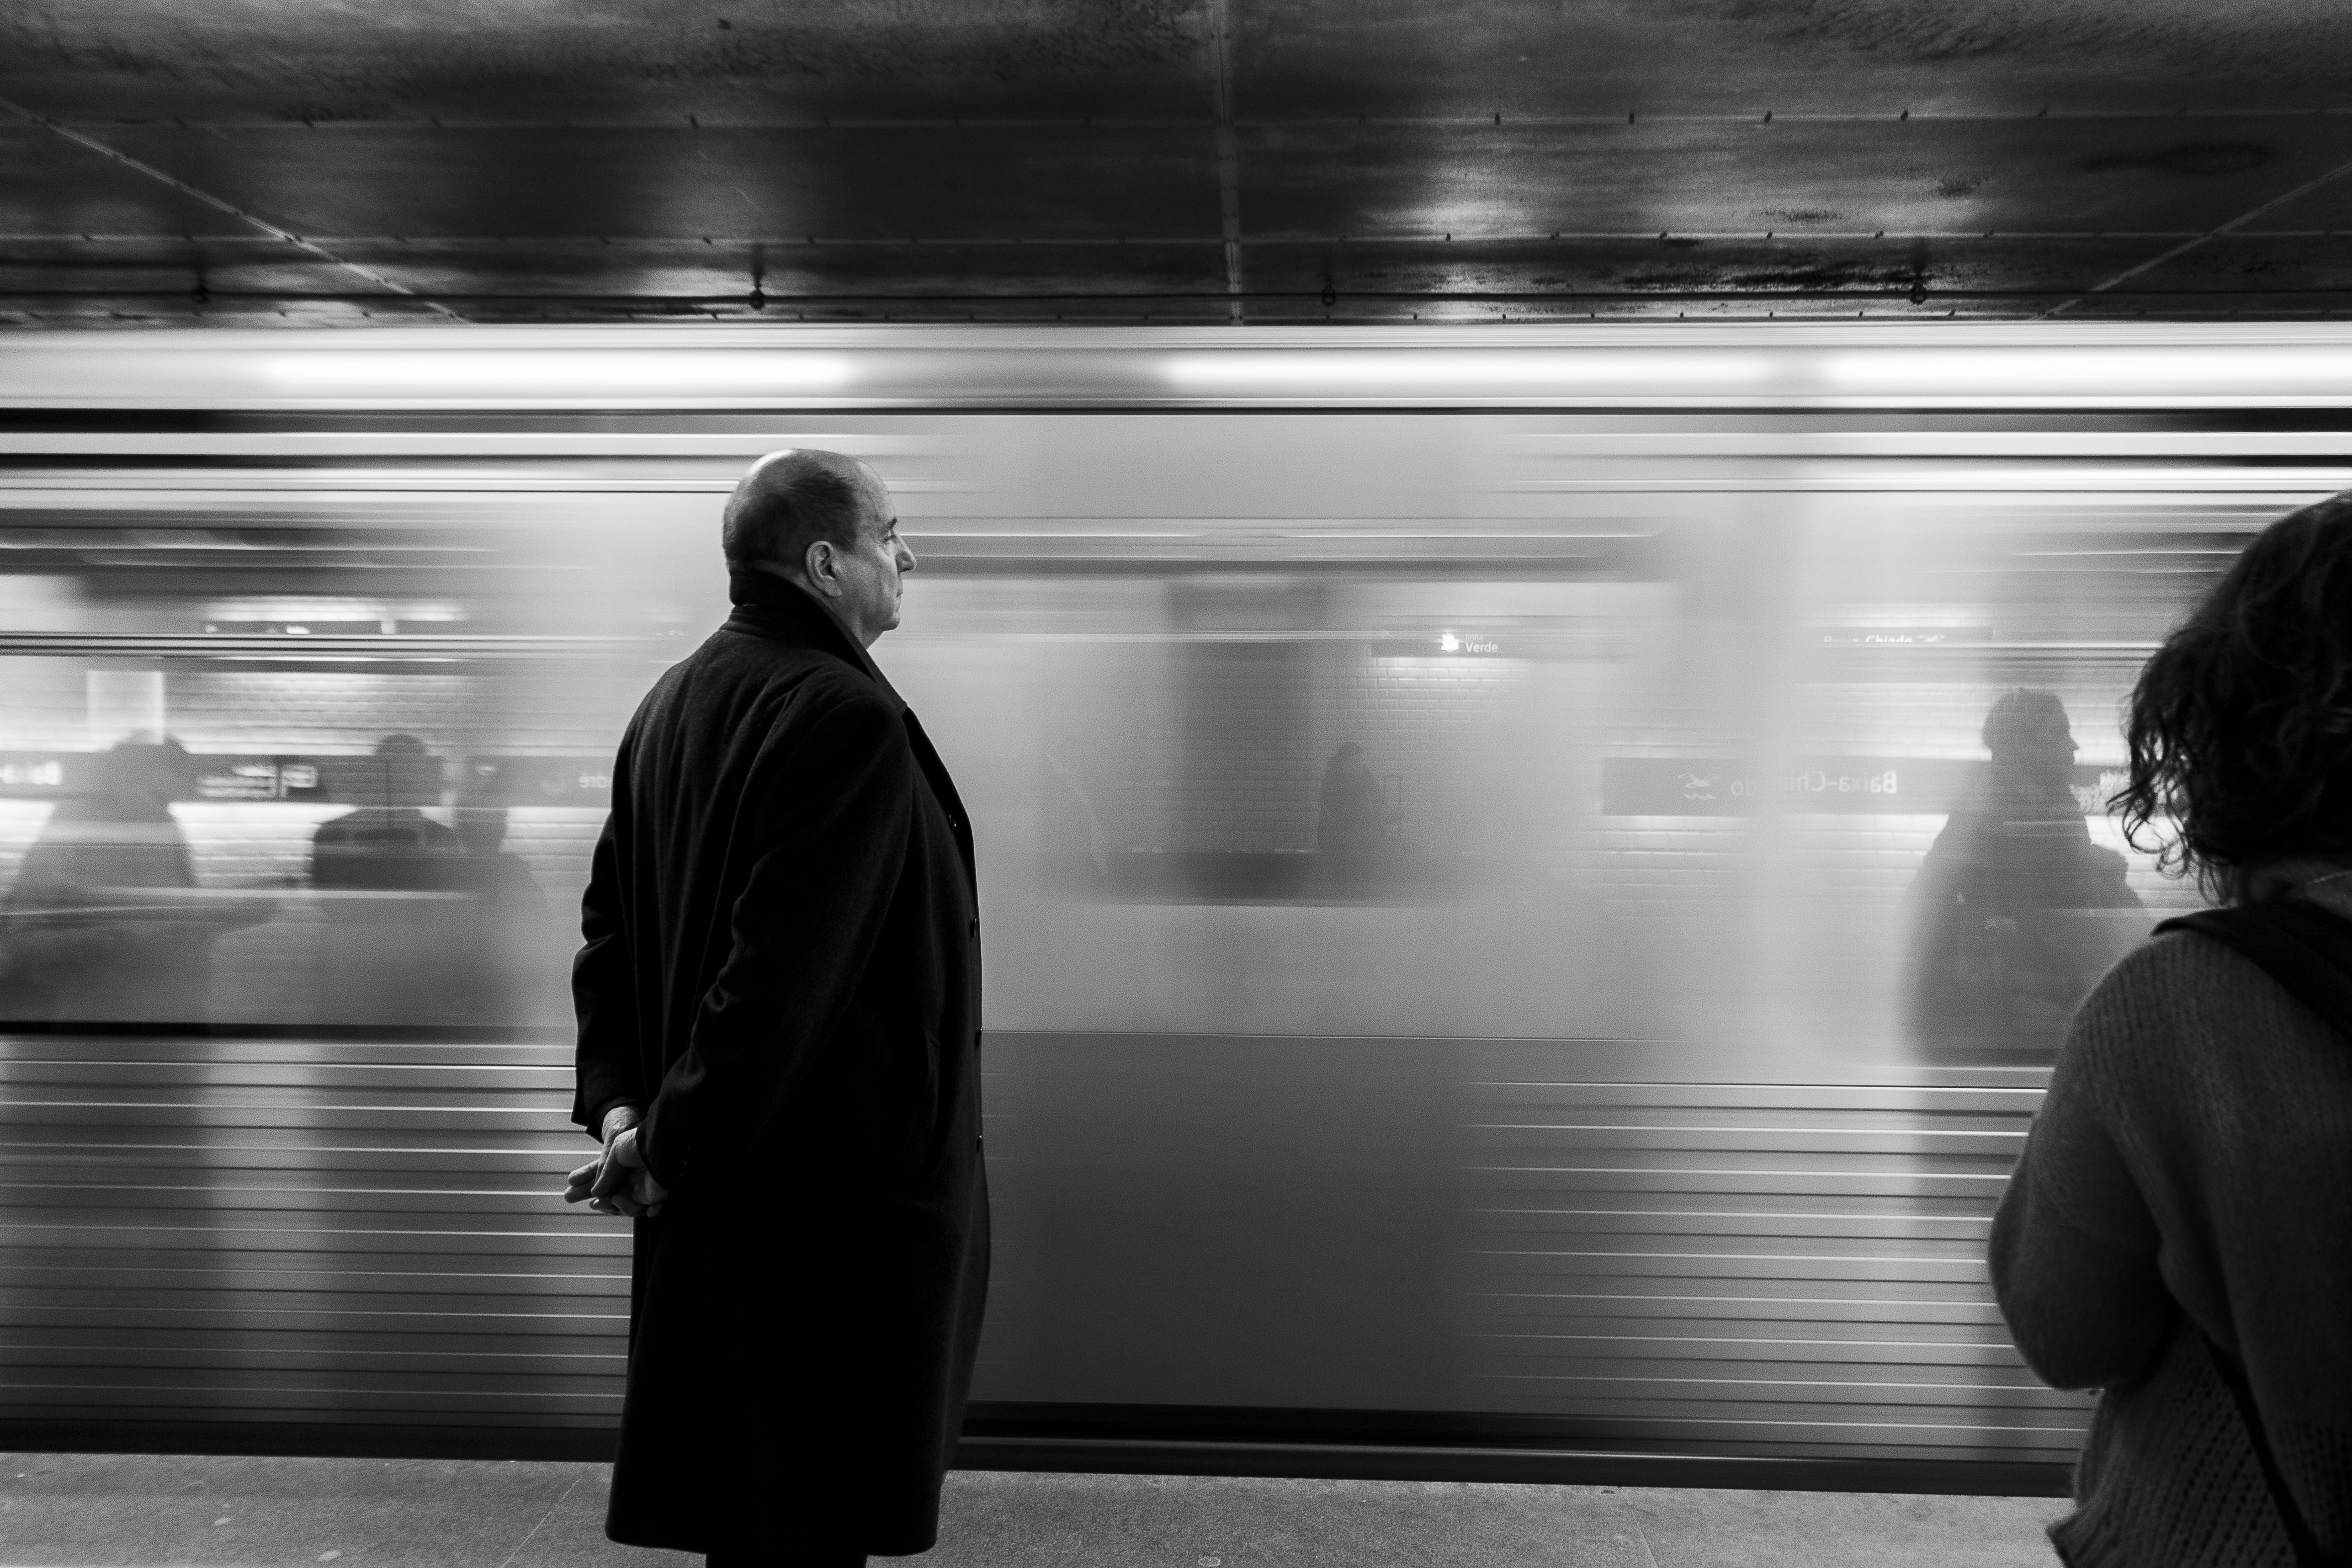 Black and white shot of bald man standing in coat on subway platform with moving train